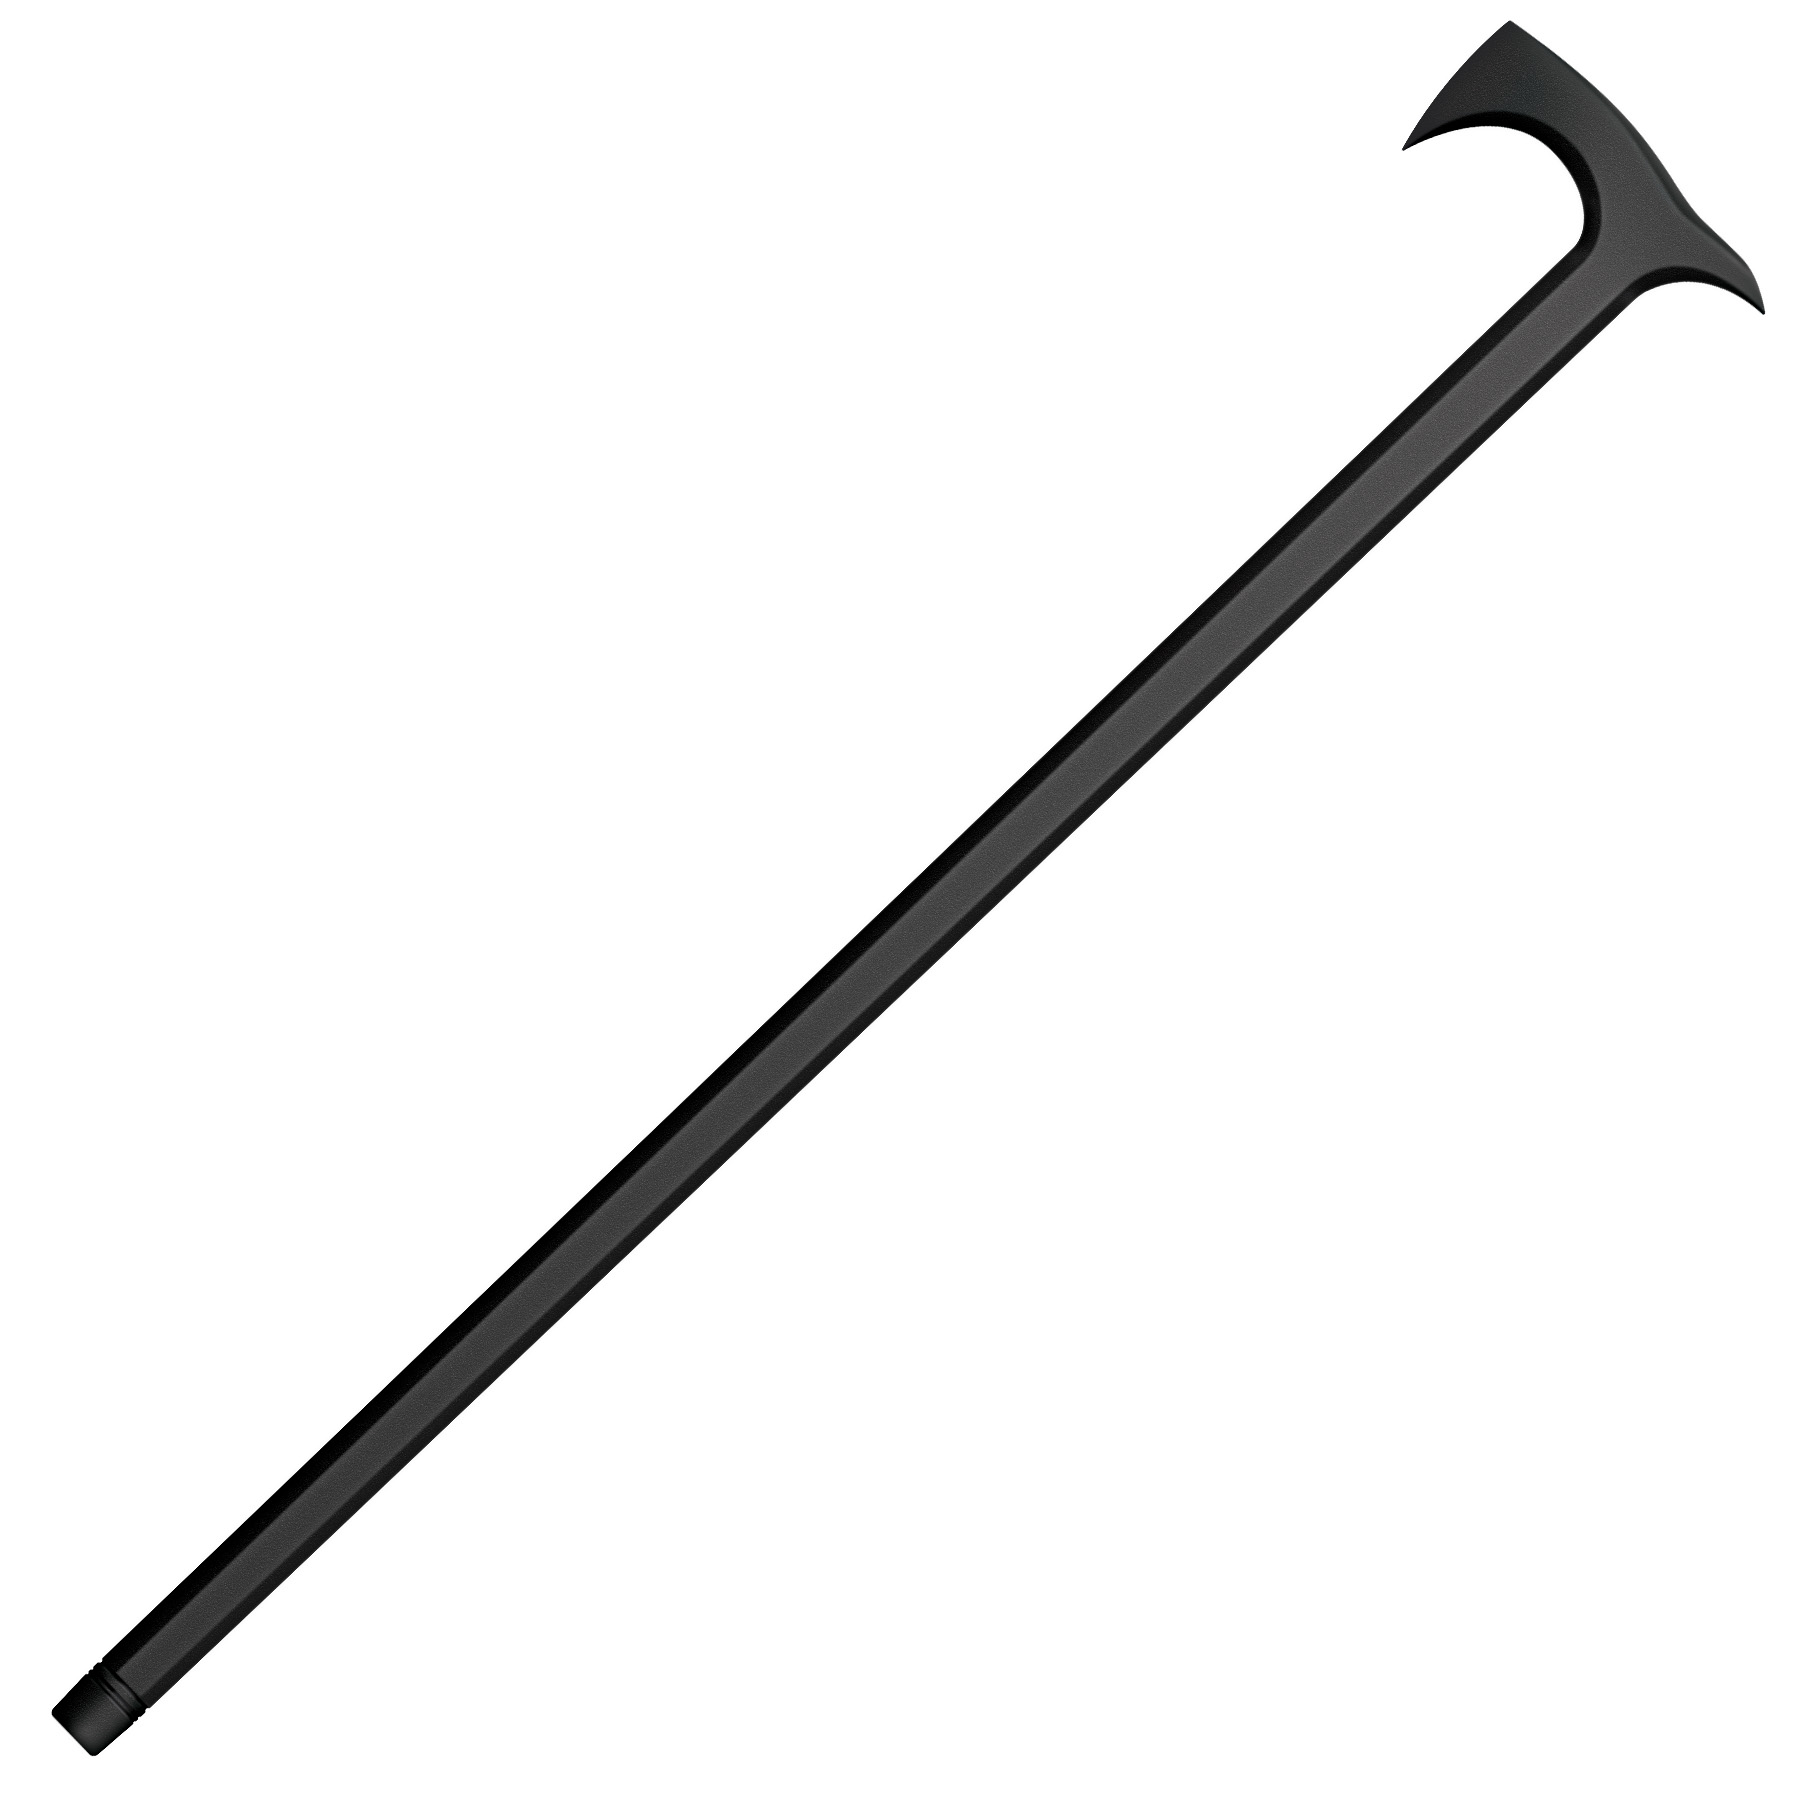 91PCAXZ - COLD STEEL Axe Head Cane